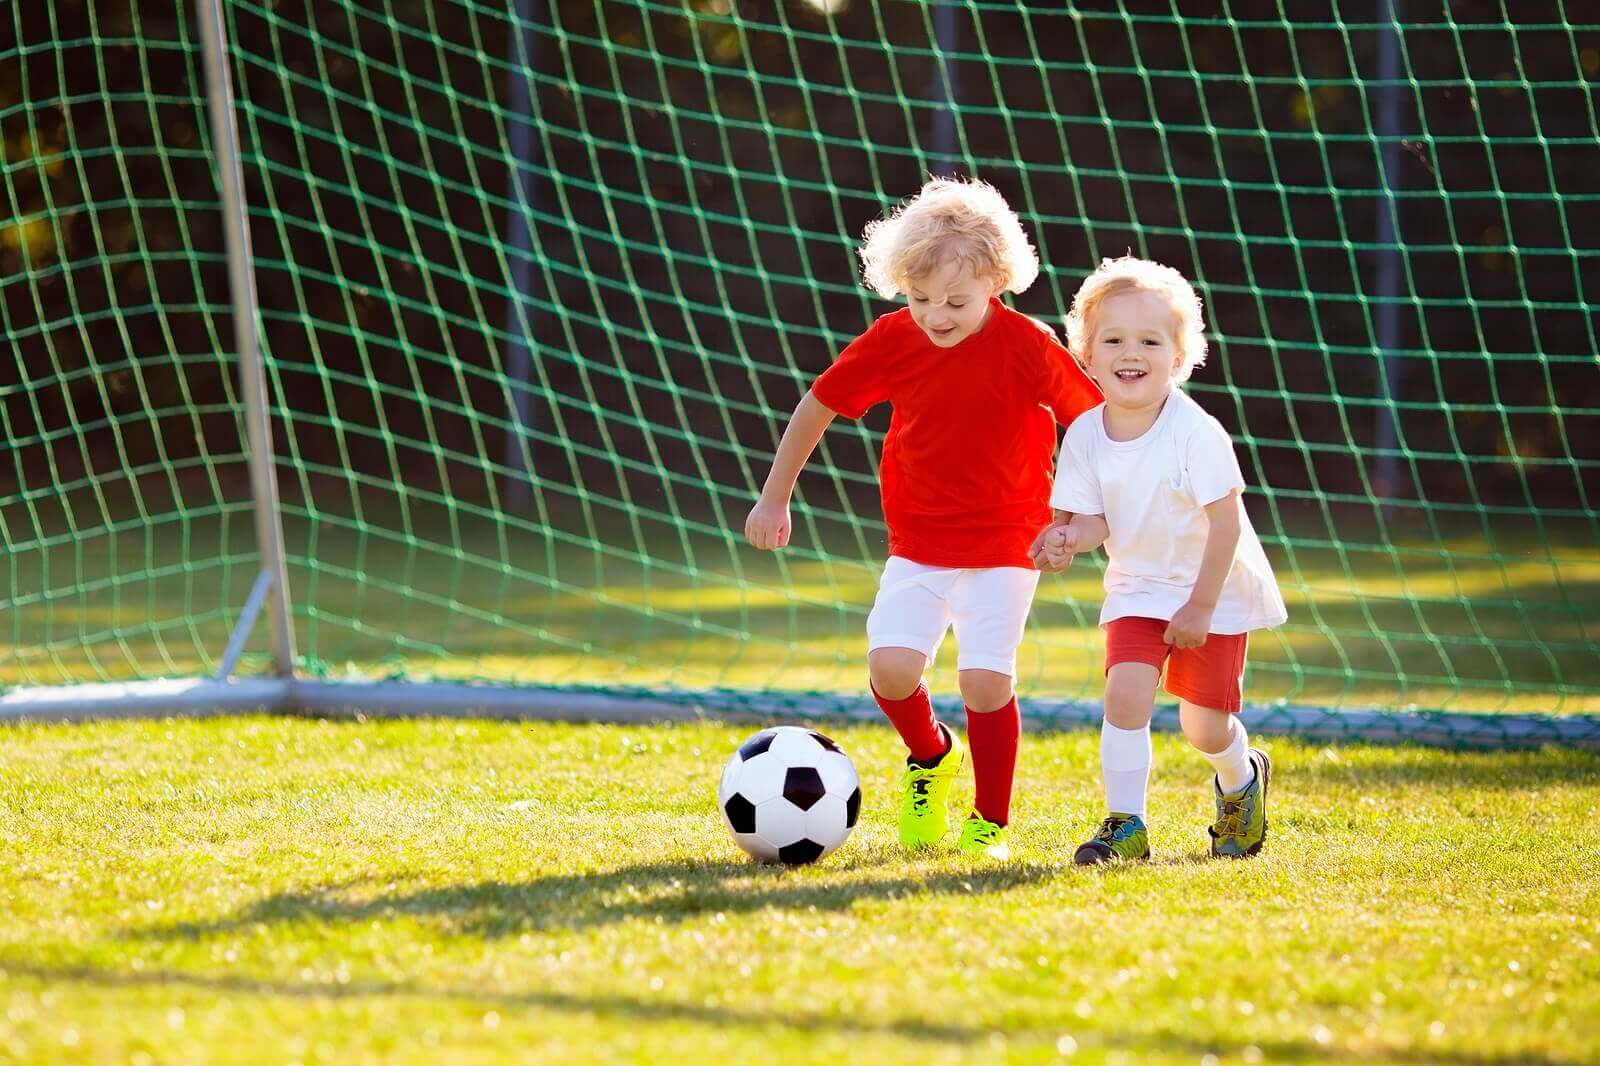 The Role of Parents in Children's Sports